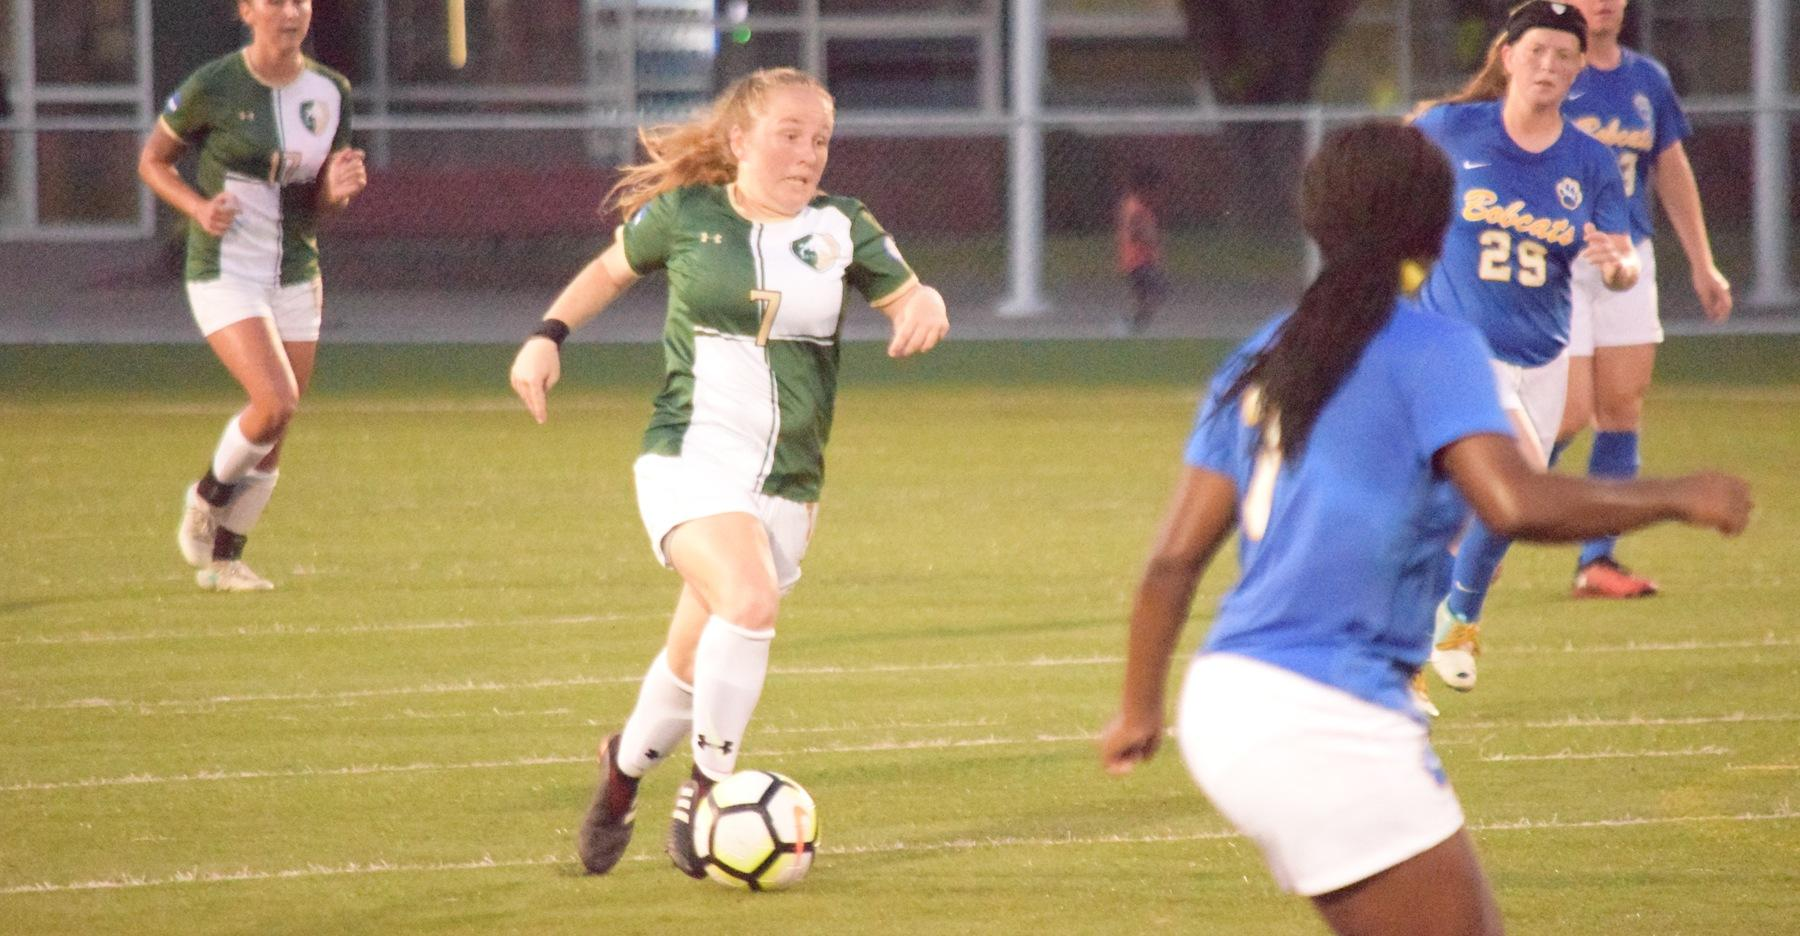 Bison edged out by Pitt.-Greensburg in opener, 2-1